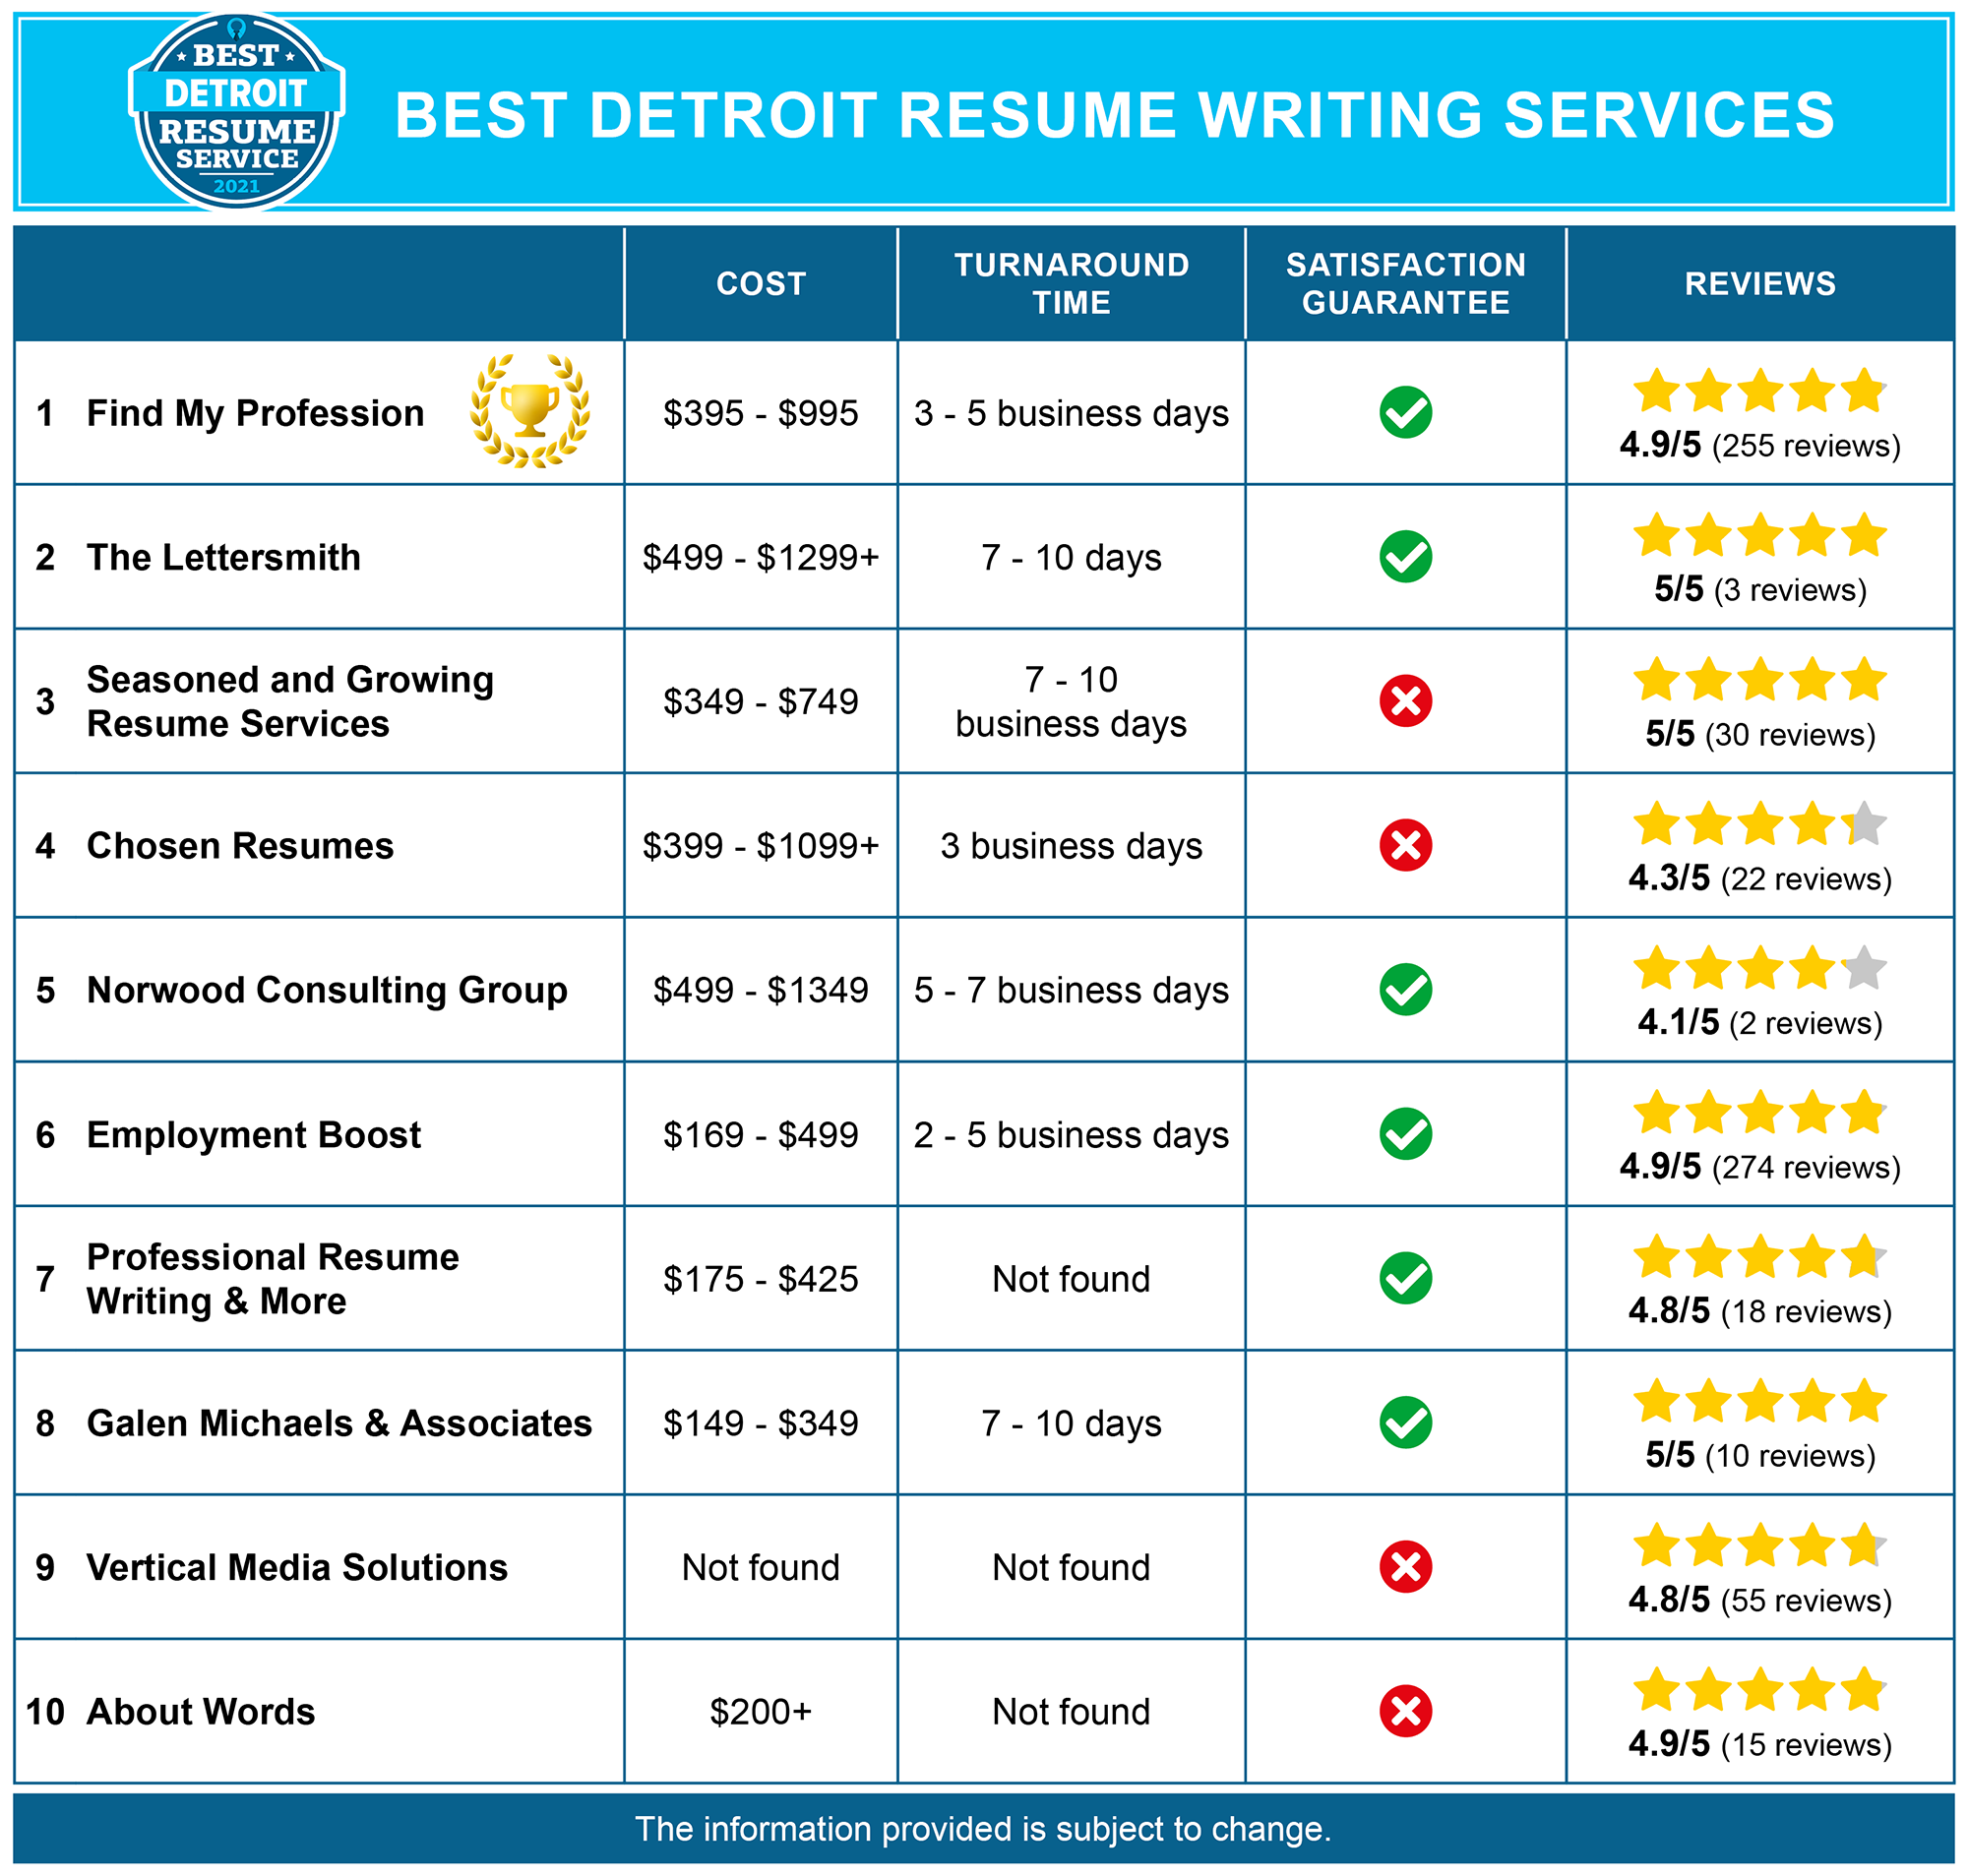 Best Detroit Resume Writing Services